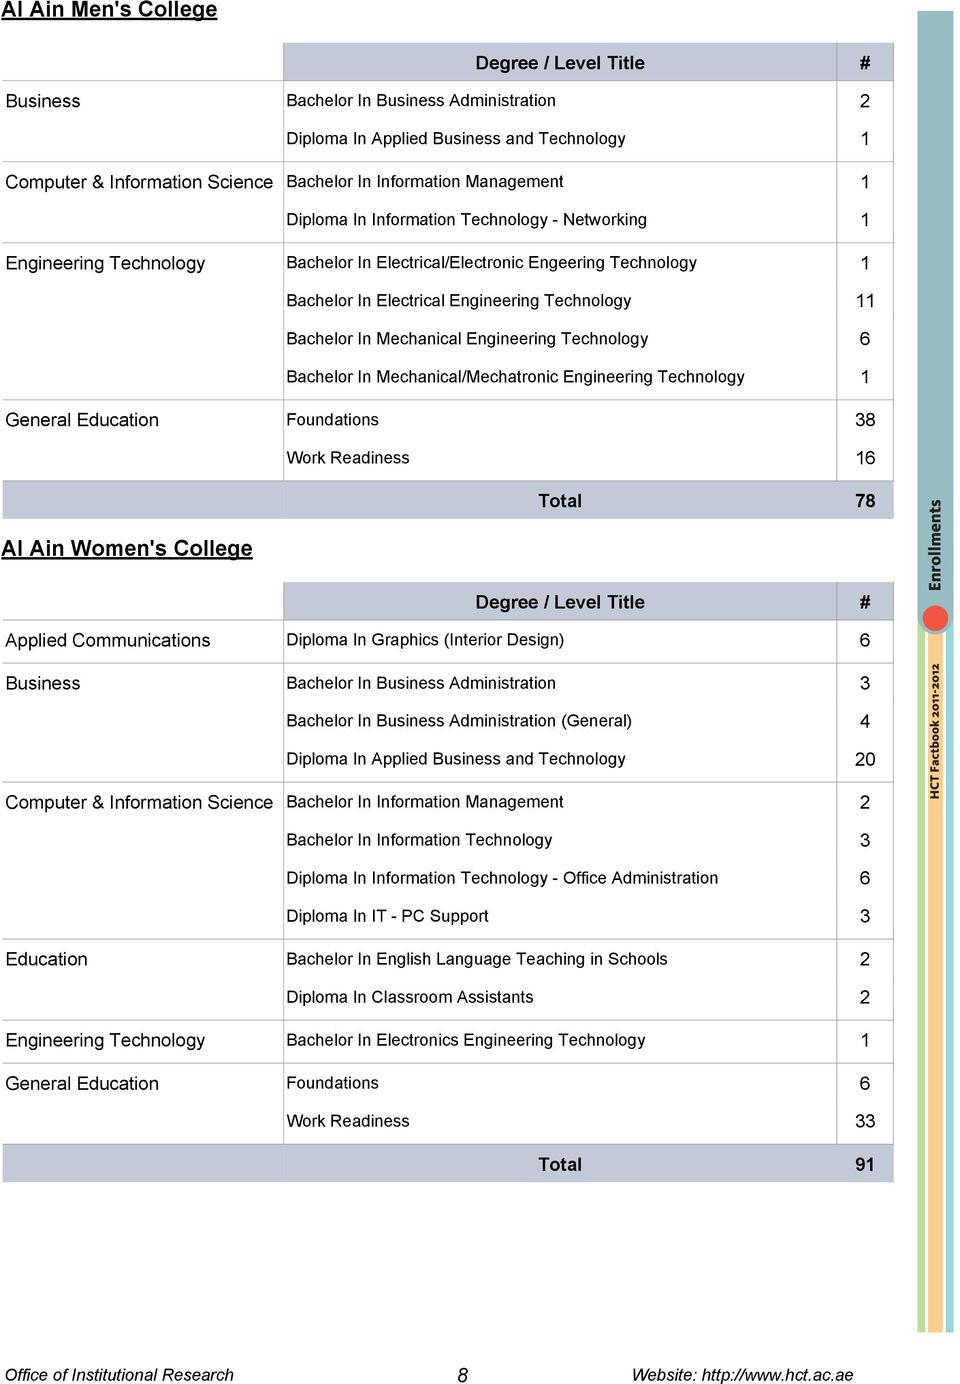 Engineering Technology 6 General Education Foundations 38 Work Readiness 16 Total 78 Al Ain Women's College Applied Communications Diploma In Graphics (Interior Design) 6 Business Bachelor In